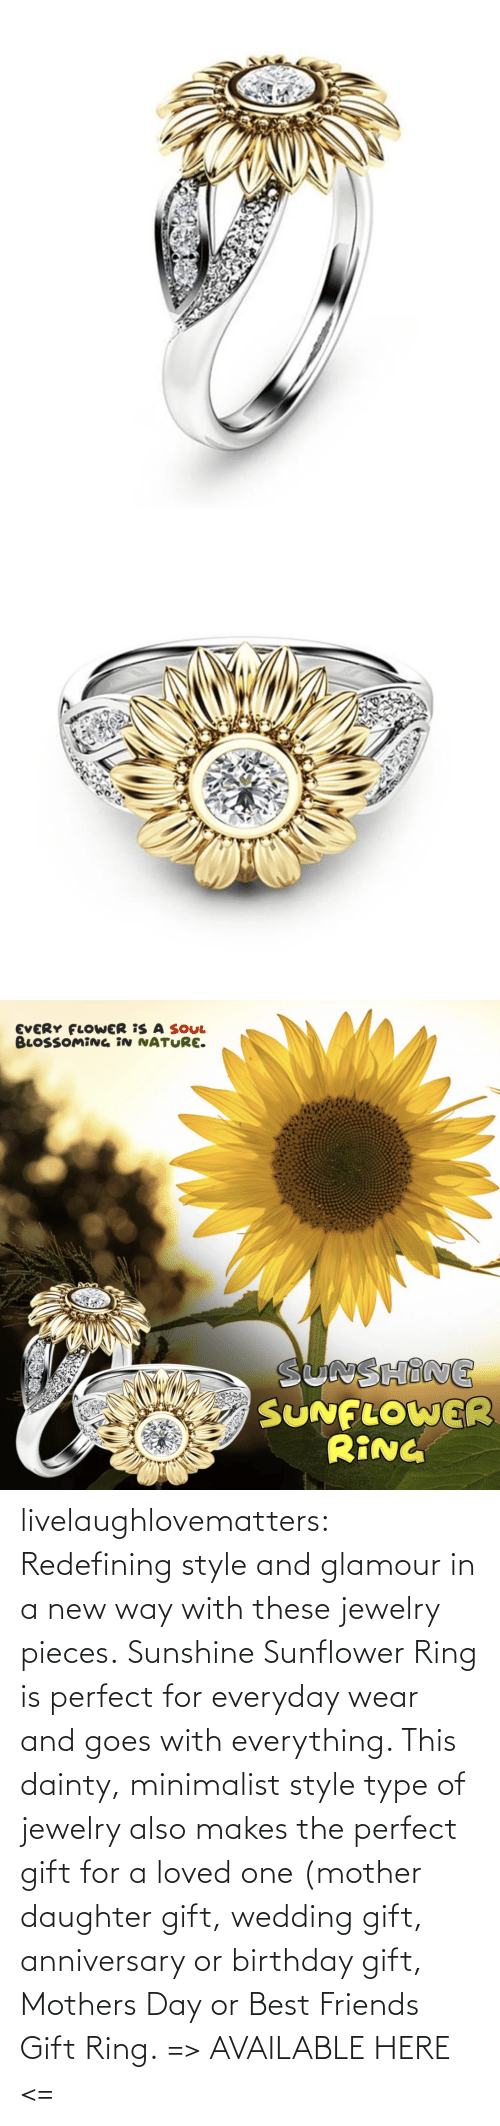 new: livelaughlovematters: Redefining style and glamour in a new way with these jewelry pieces. Sunshine Sunflower Ring is perfect for everyday wear and goes with everything. This dainty, minimalist style type of jewelry also makes the perfect gift for a loved one (mother daughter gift, wedding gift, anniversary or birthday gift, Mothers Day or Best Friends Gift Ring. => AVAILABLE HERE <=